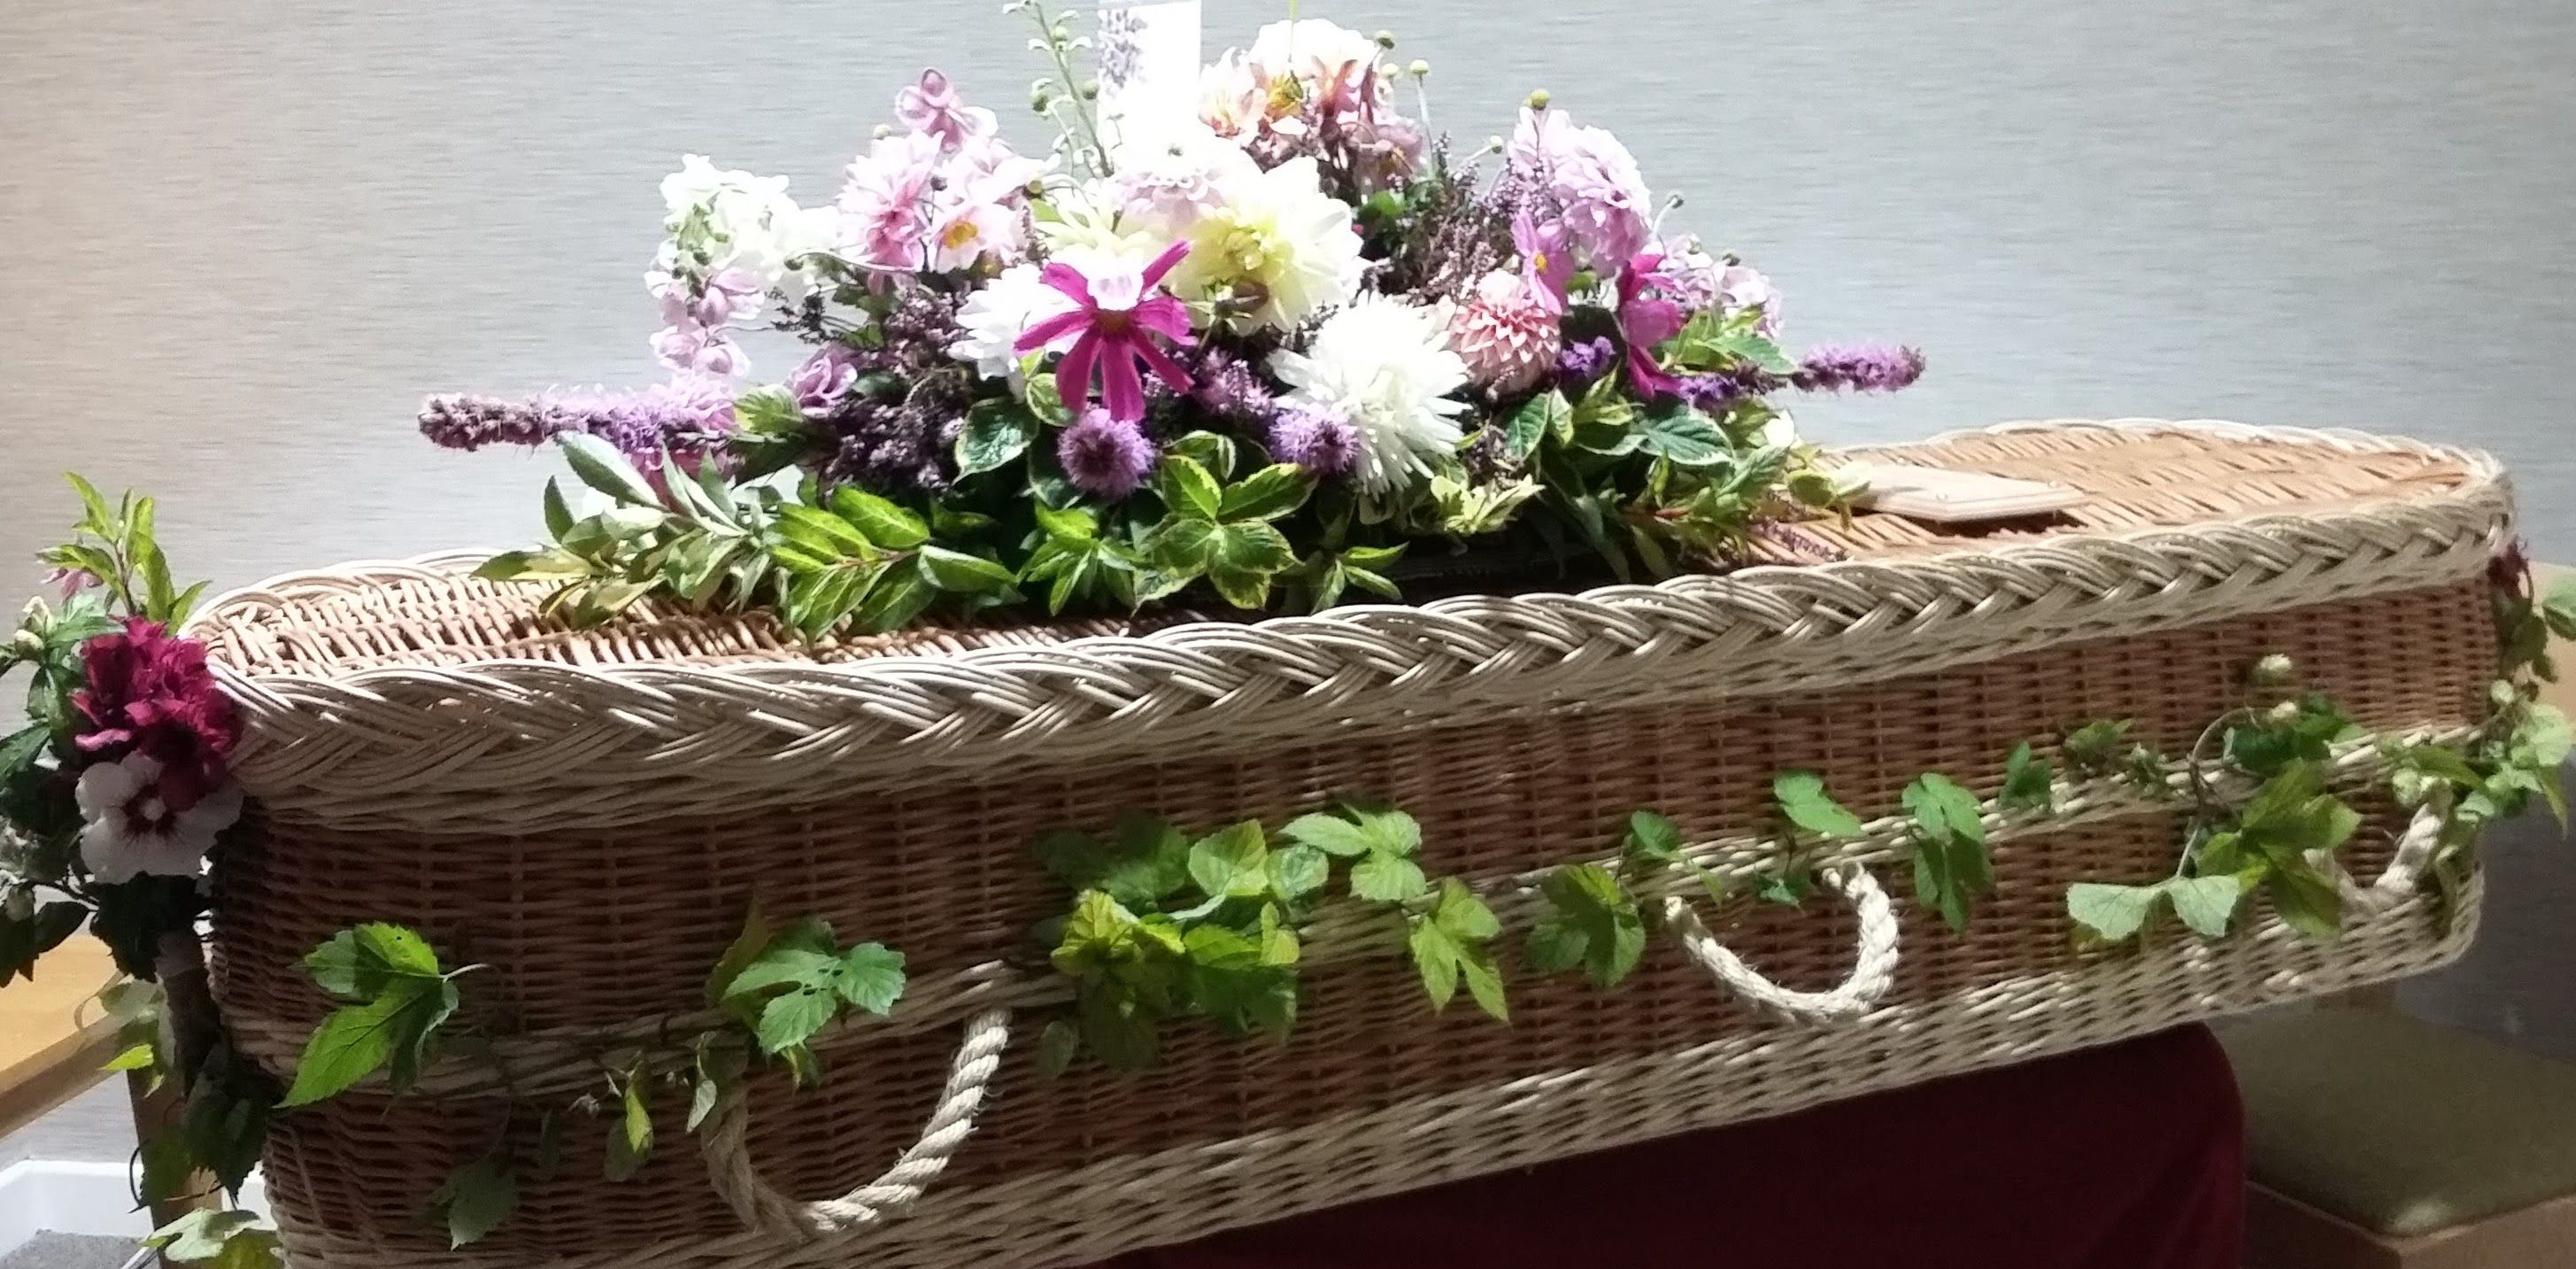 Somerset cut flower garden floral messages we have a wide variety of flowers for expressing sentiments izmirmasajfo